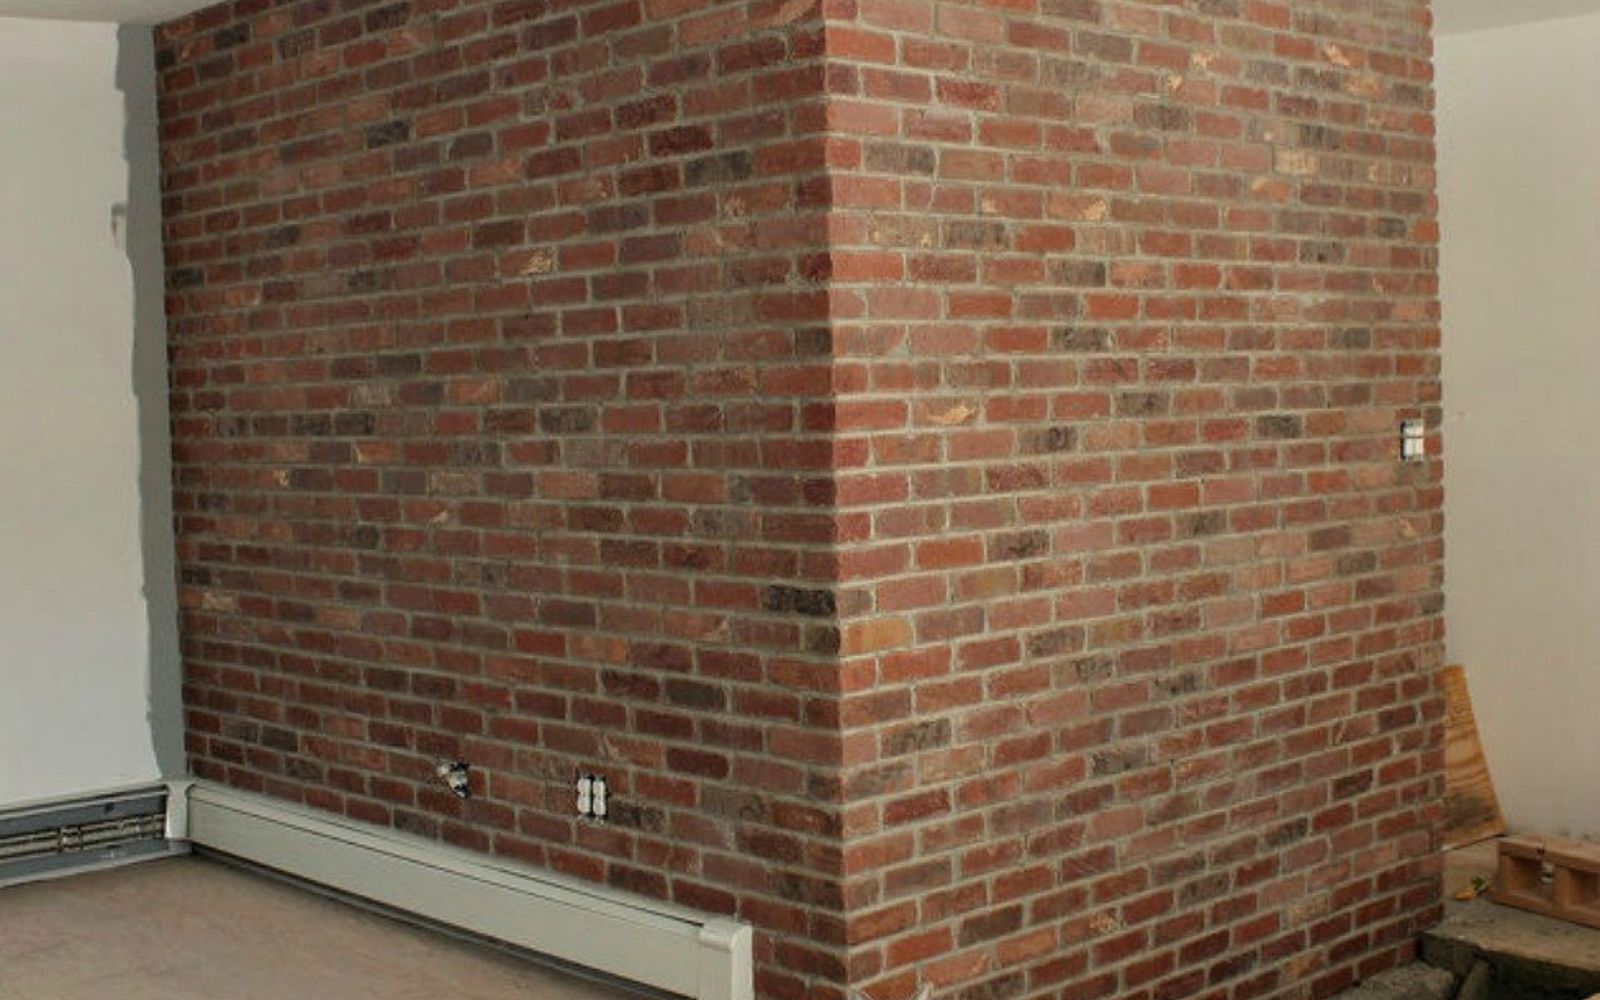 Why Everyone Is Copying These Amazing Brick Paneling Ideas